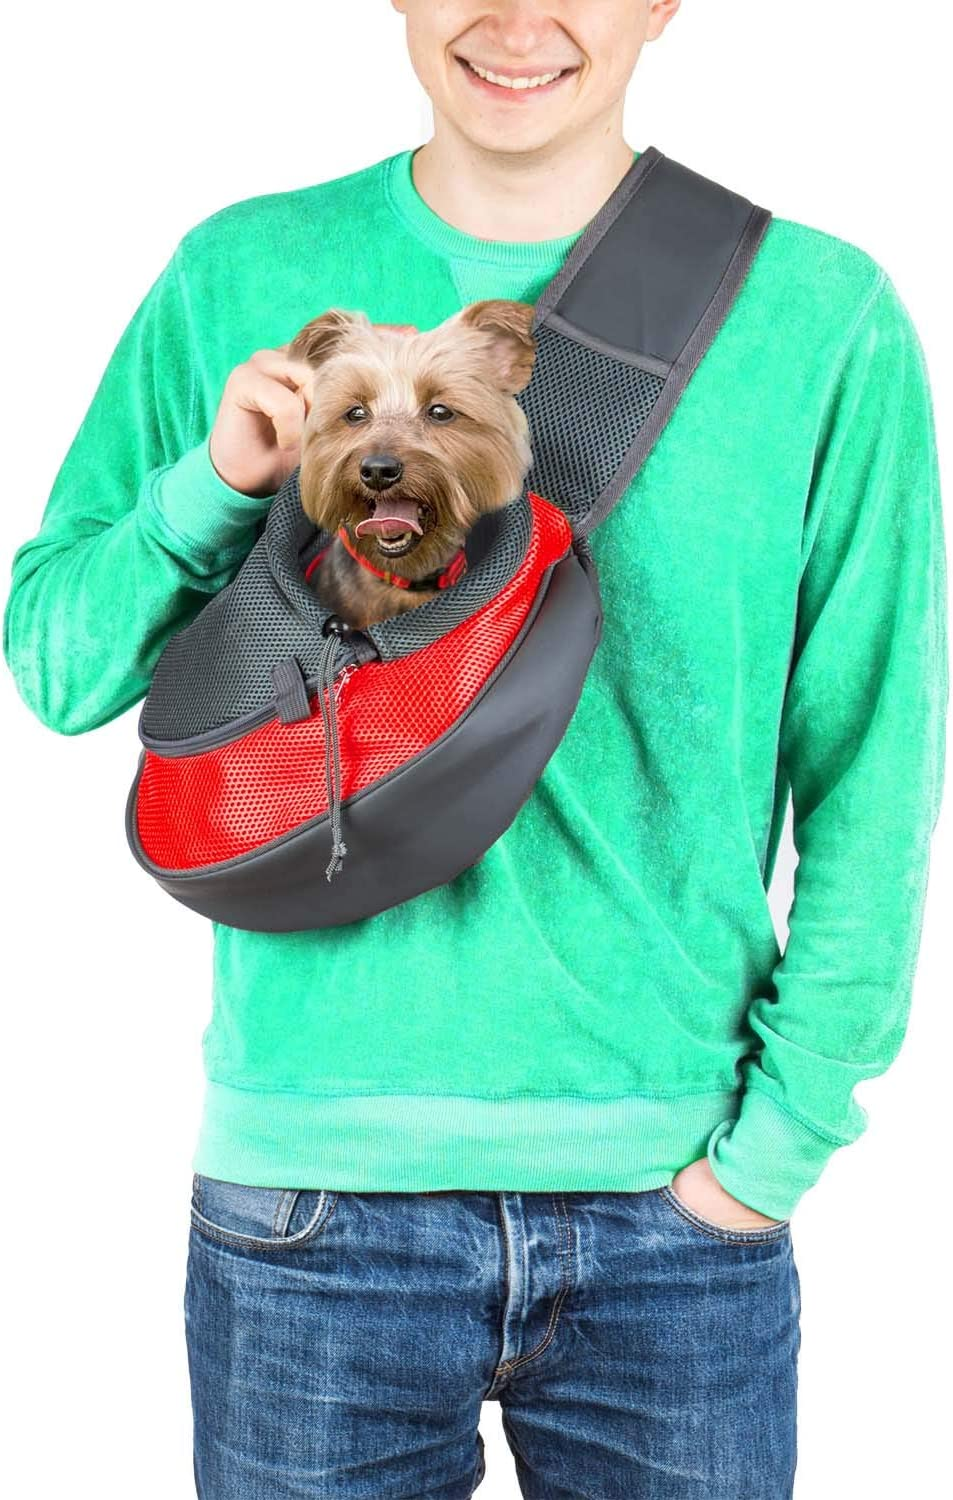 Dog Sling Unadjustable PETLOFT Reversible Pet Sling Carrier Hands-Free Cross-Body Carrier with Collar Hook for Dog//Cat//Bunny up to 11lb Small Dog Carrier